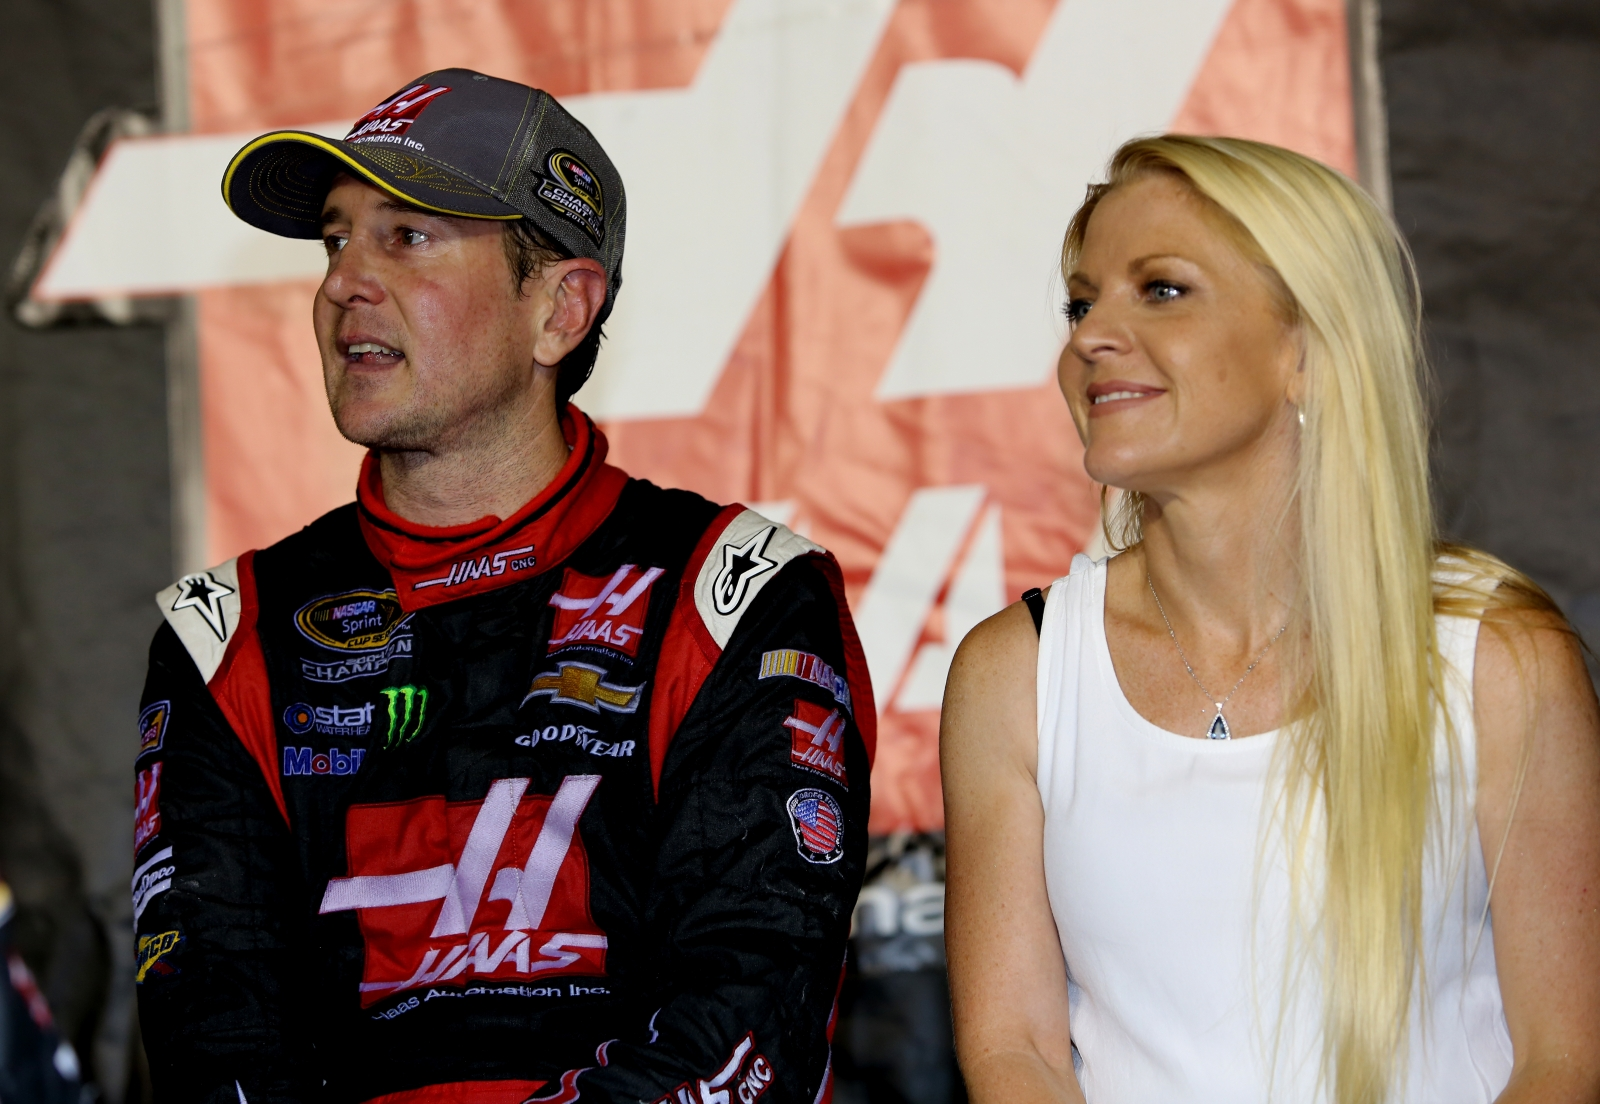 Kurt Busch and Patricia Driscoll during happier times, last year